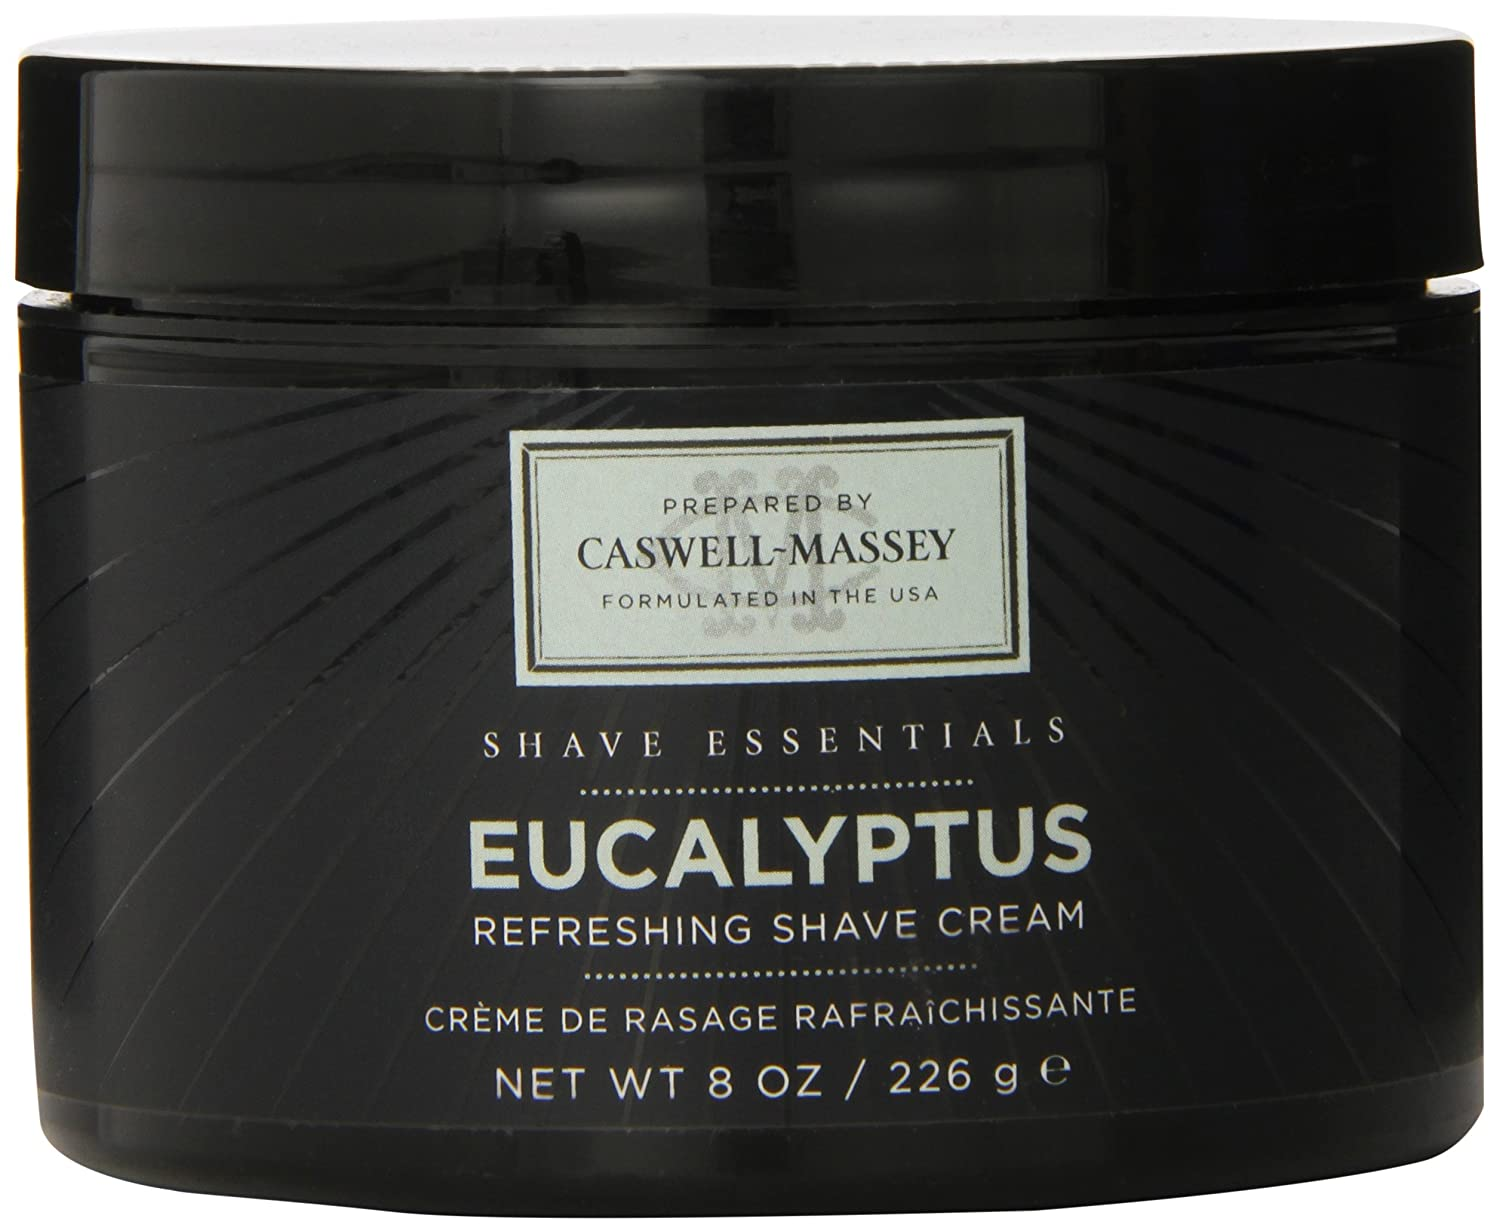 Eucalyptus Shave Cream Jar, 8 Oz. 0.6796875-Pounds Fab Products CA